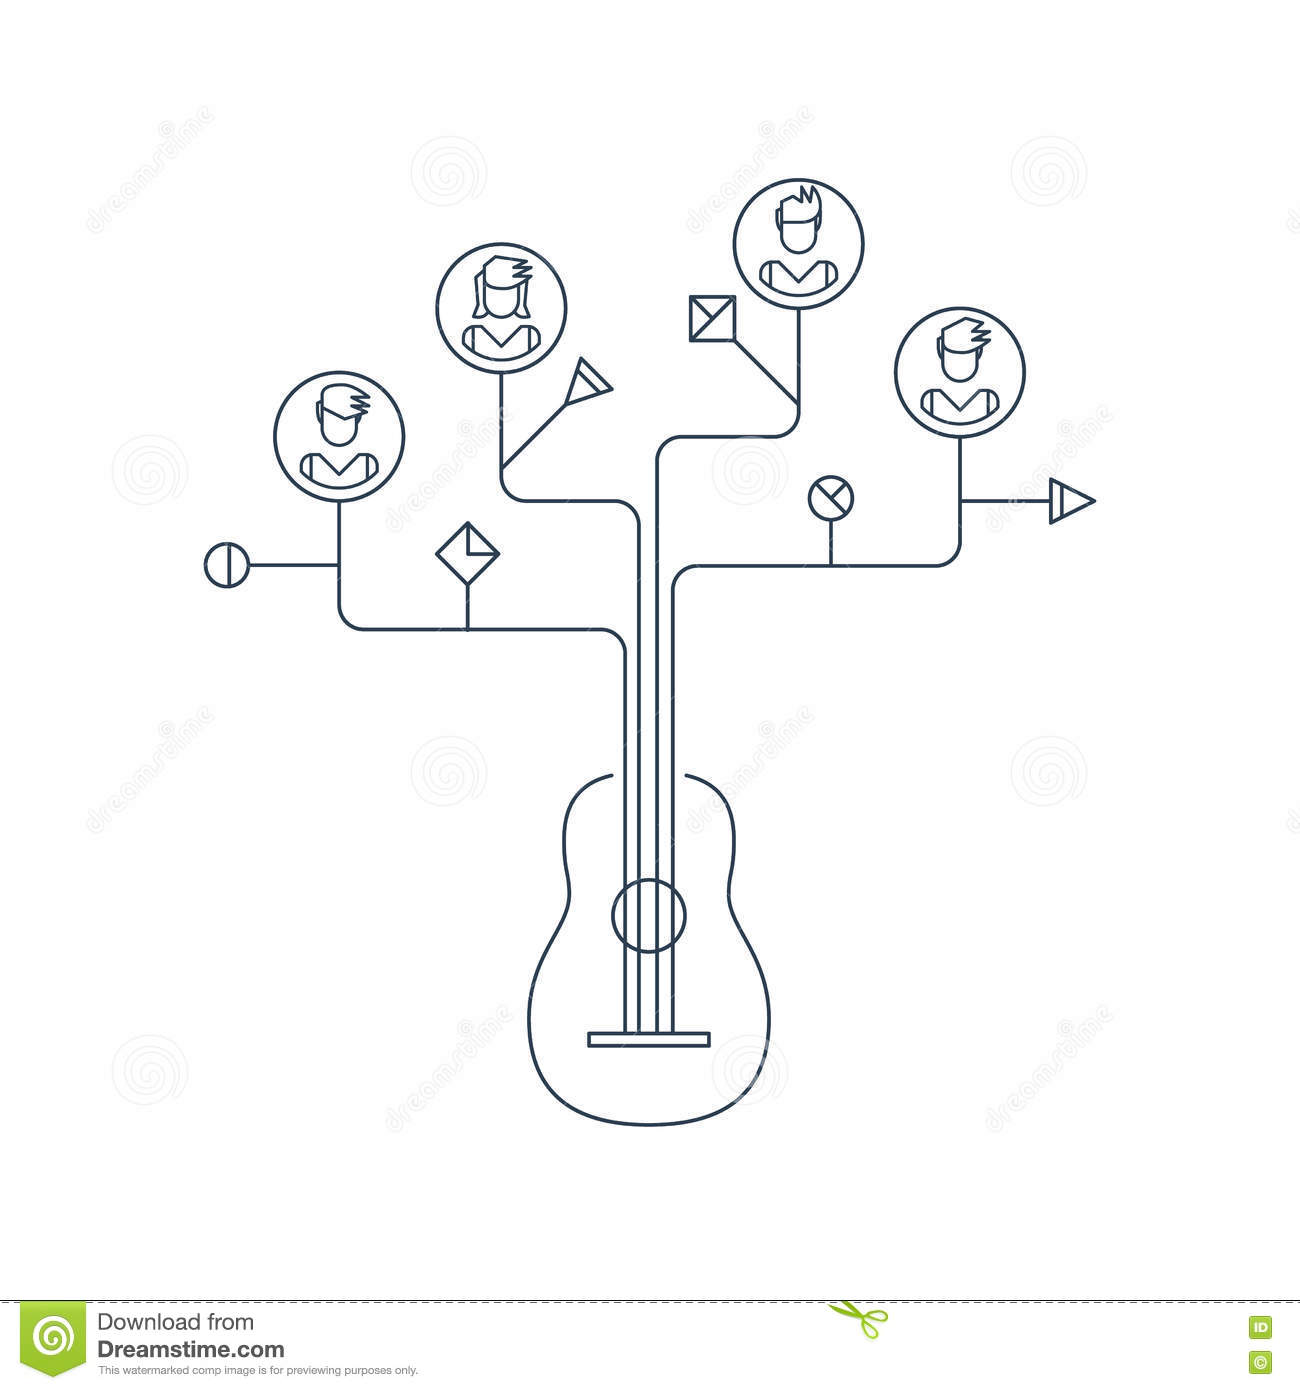 Learn To Play The Guitar Education Concept Icons And Symbols Stock